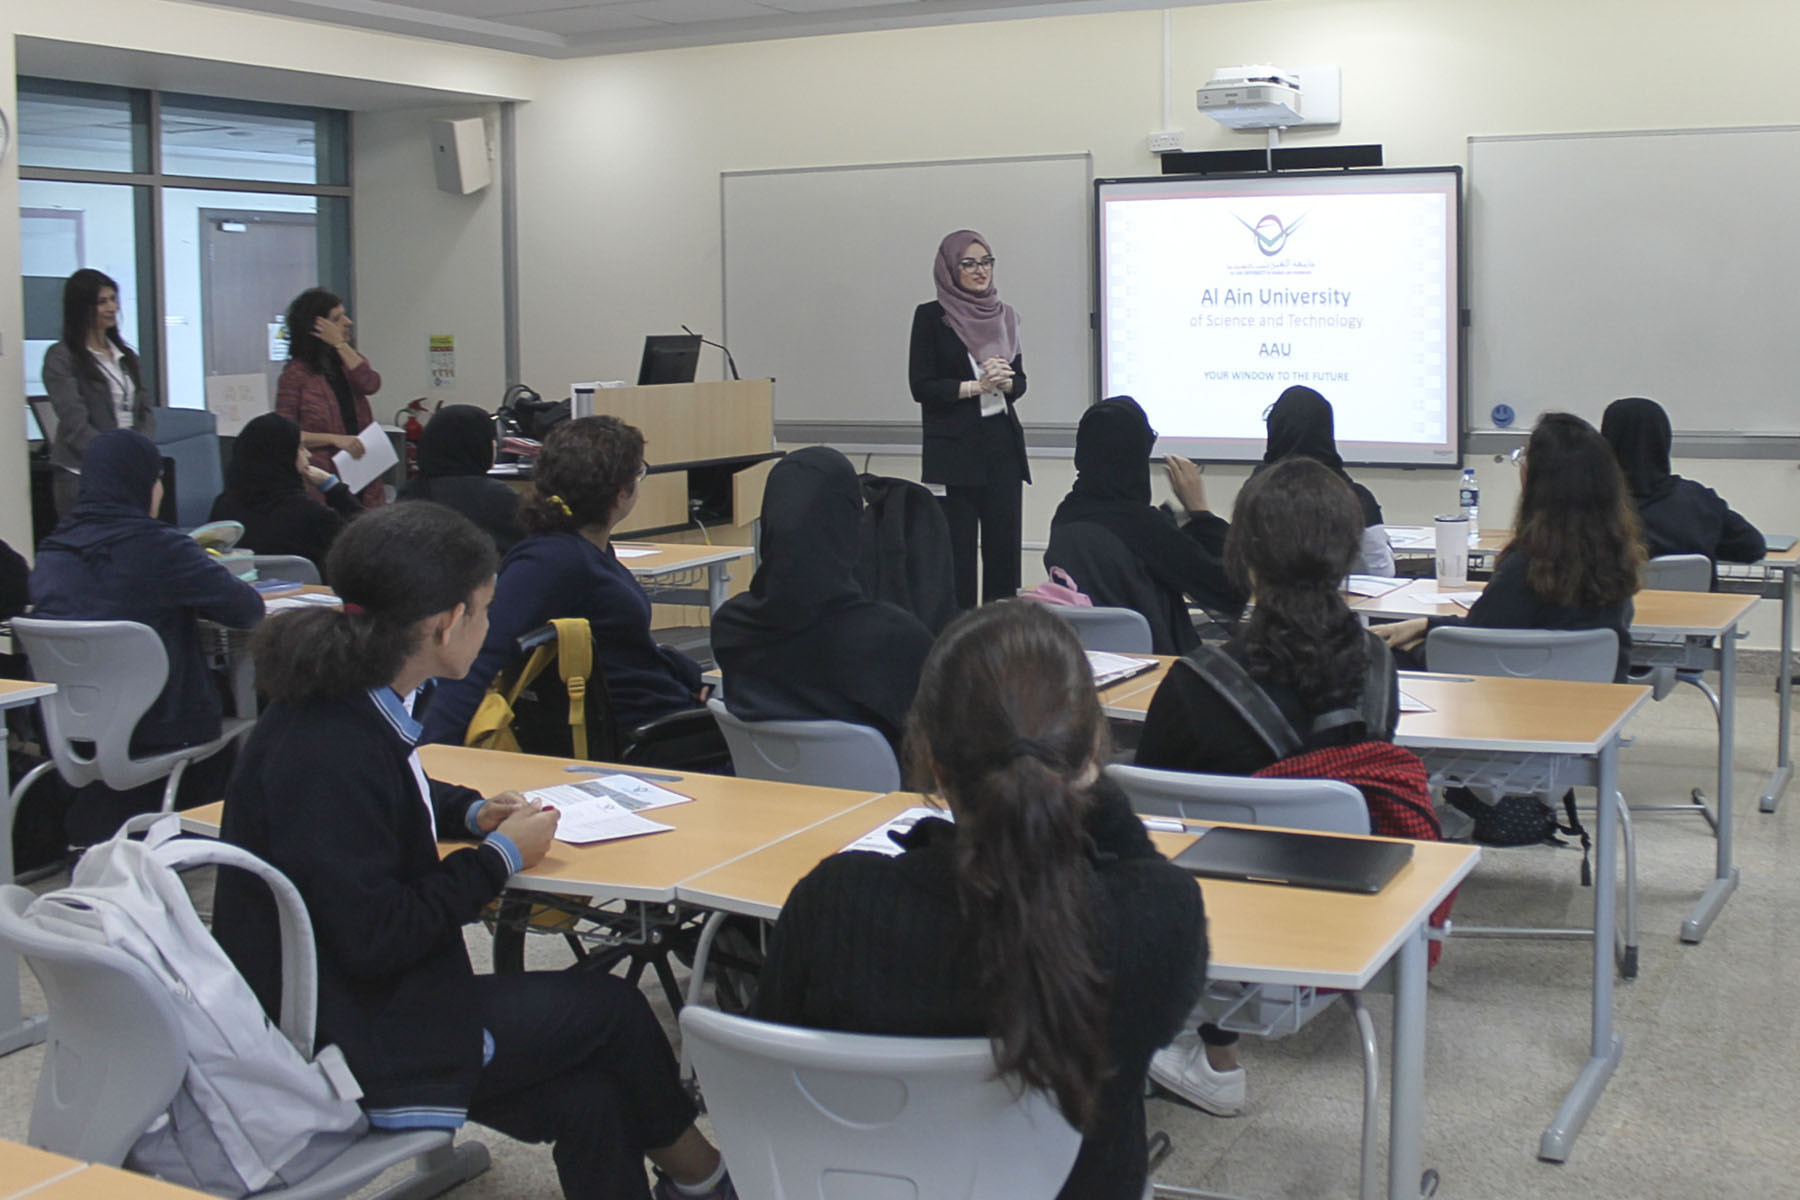 Workshop about accounting at ADNOC by AAU - Al Ain University